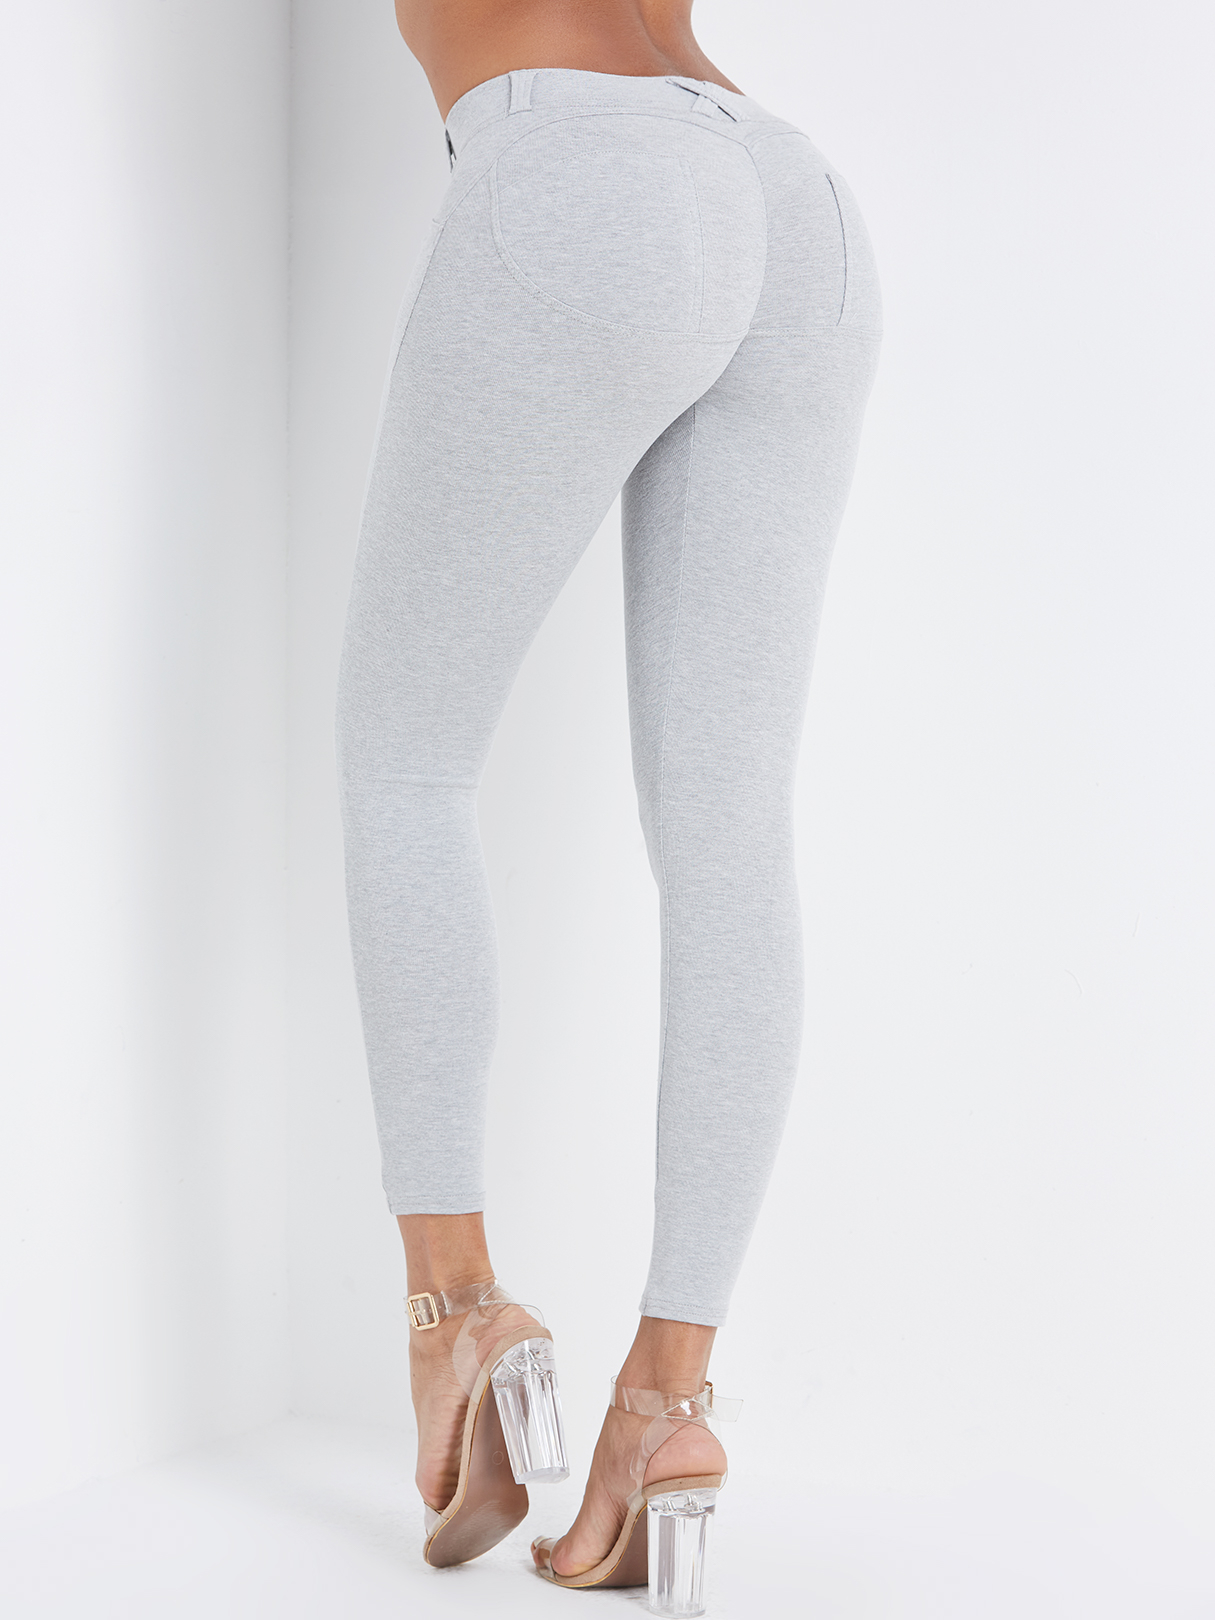 Grey Side Pockets Fashion Bodycon Leggings